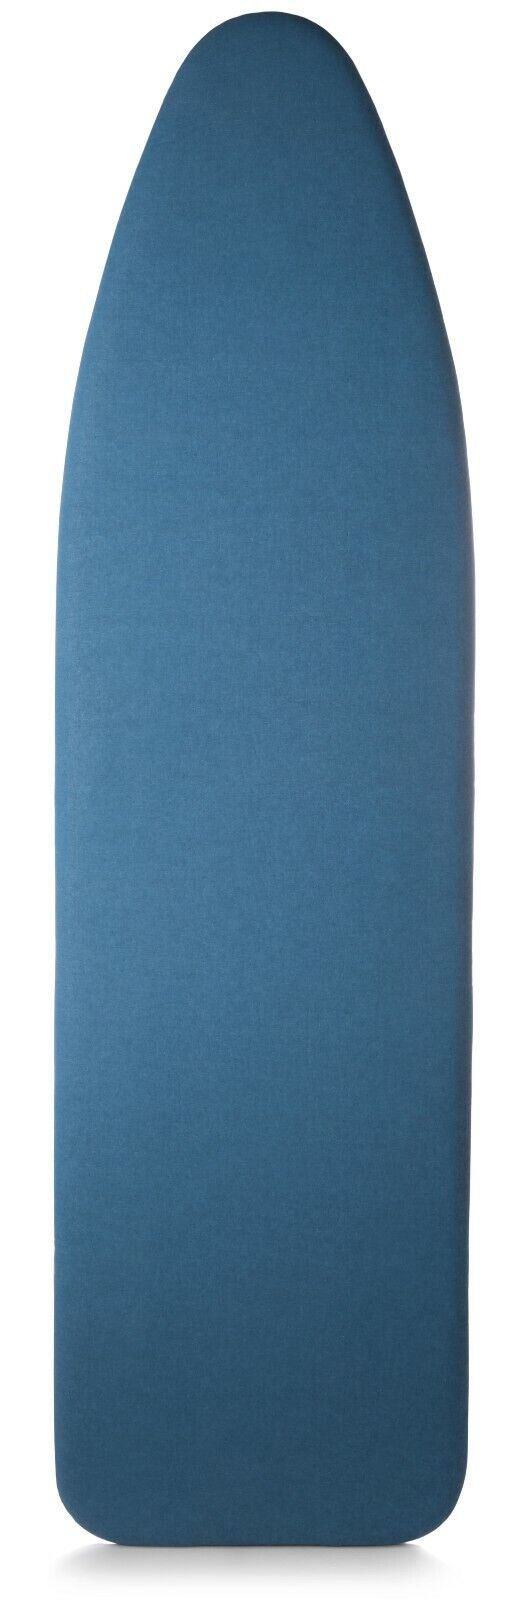 Ironing Board Cover & Pad 14 x 54 inch, Titanium Coated, 3 L